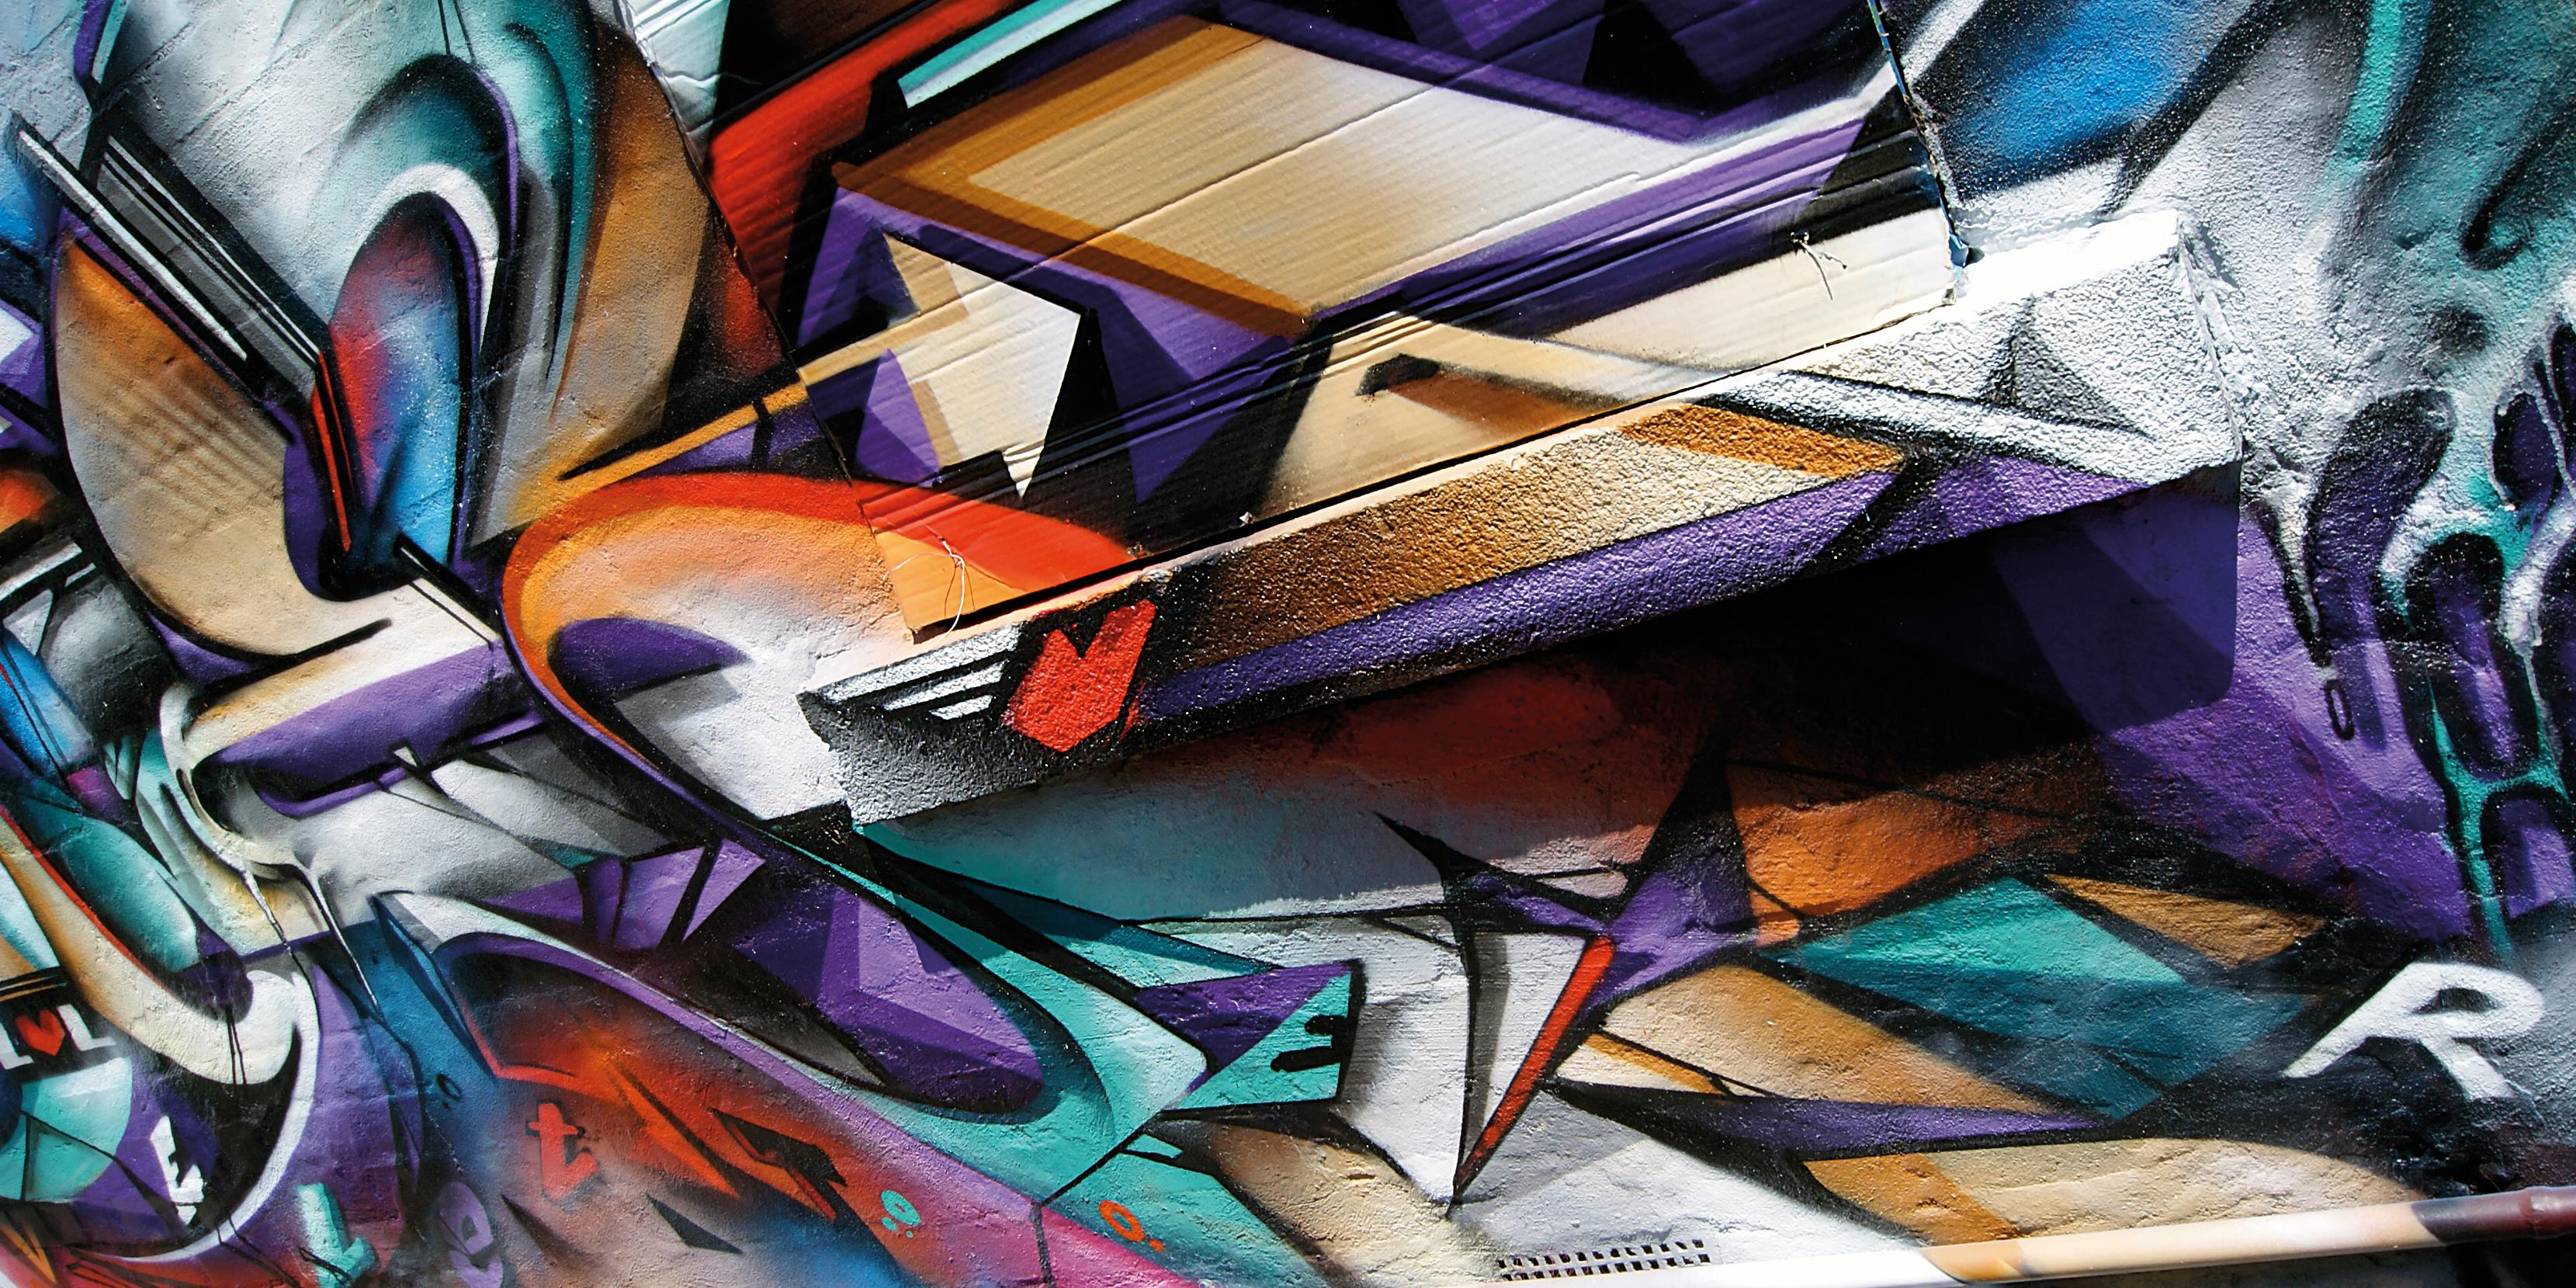 A work by Does - Melbourne australia mural 2